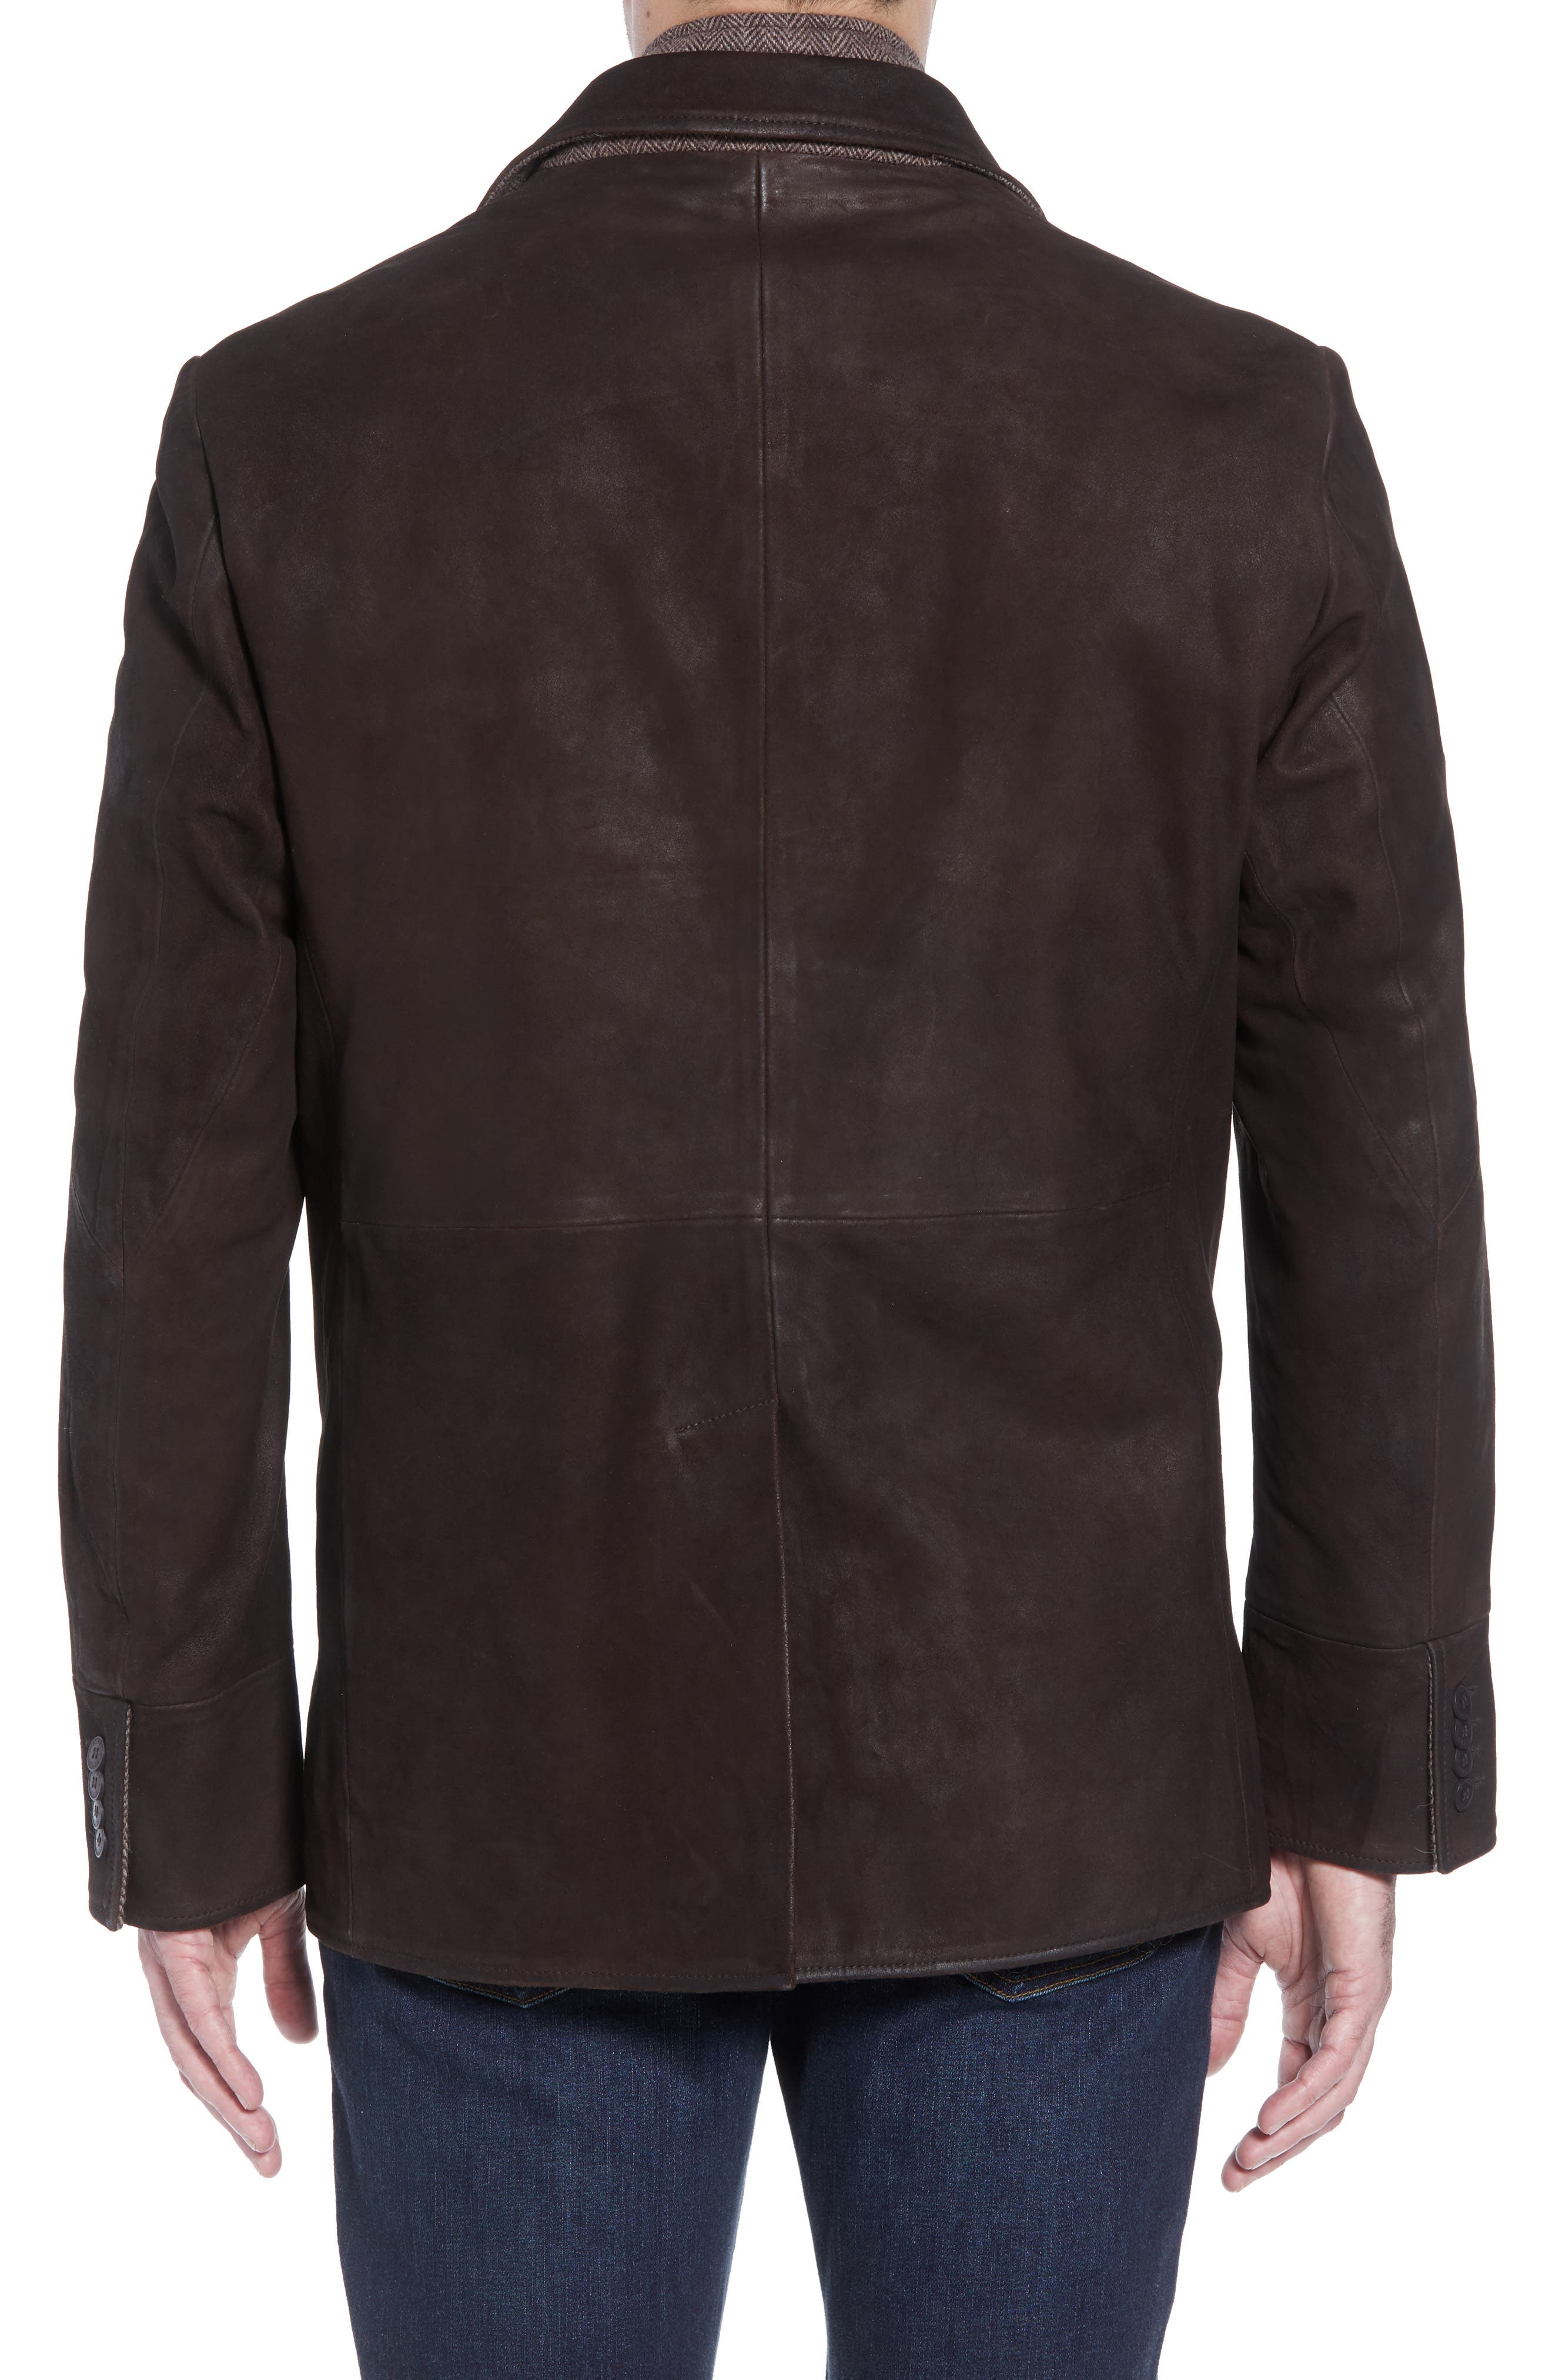 Distressed Leather Hybrid Coat,                             Alternate thumbnail 3, color,                             CHOCOLATE BROWN